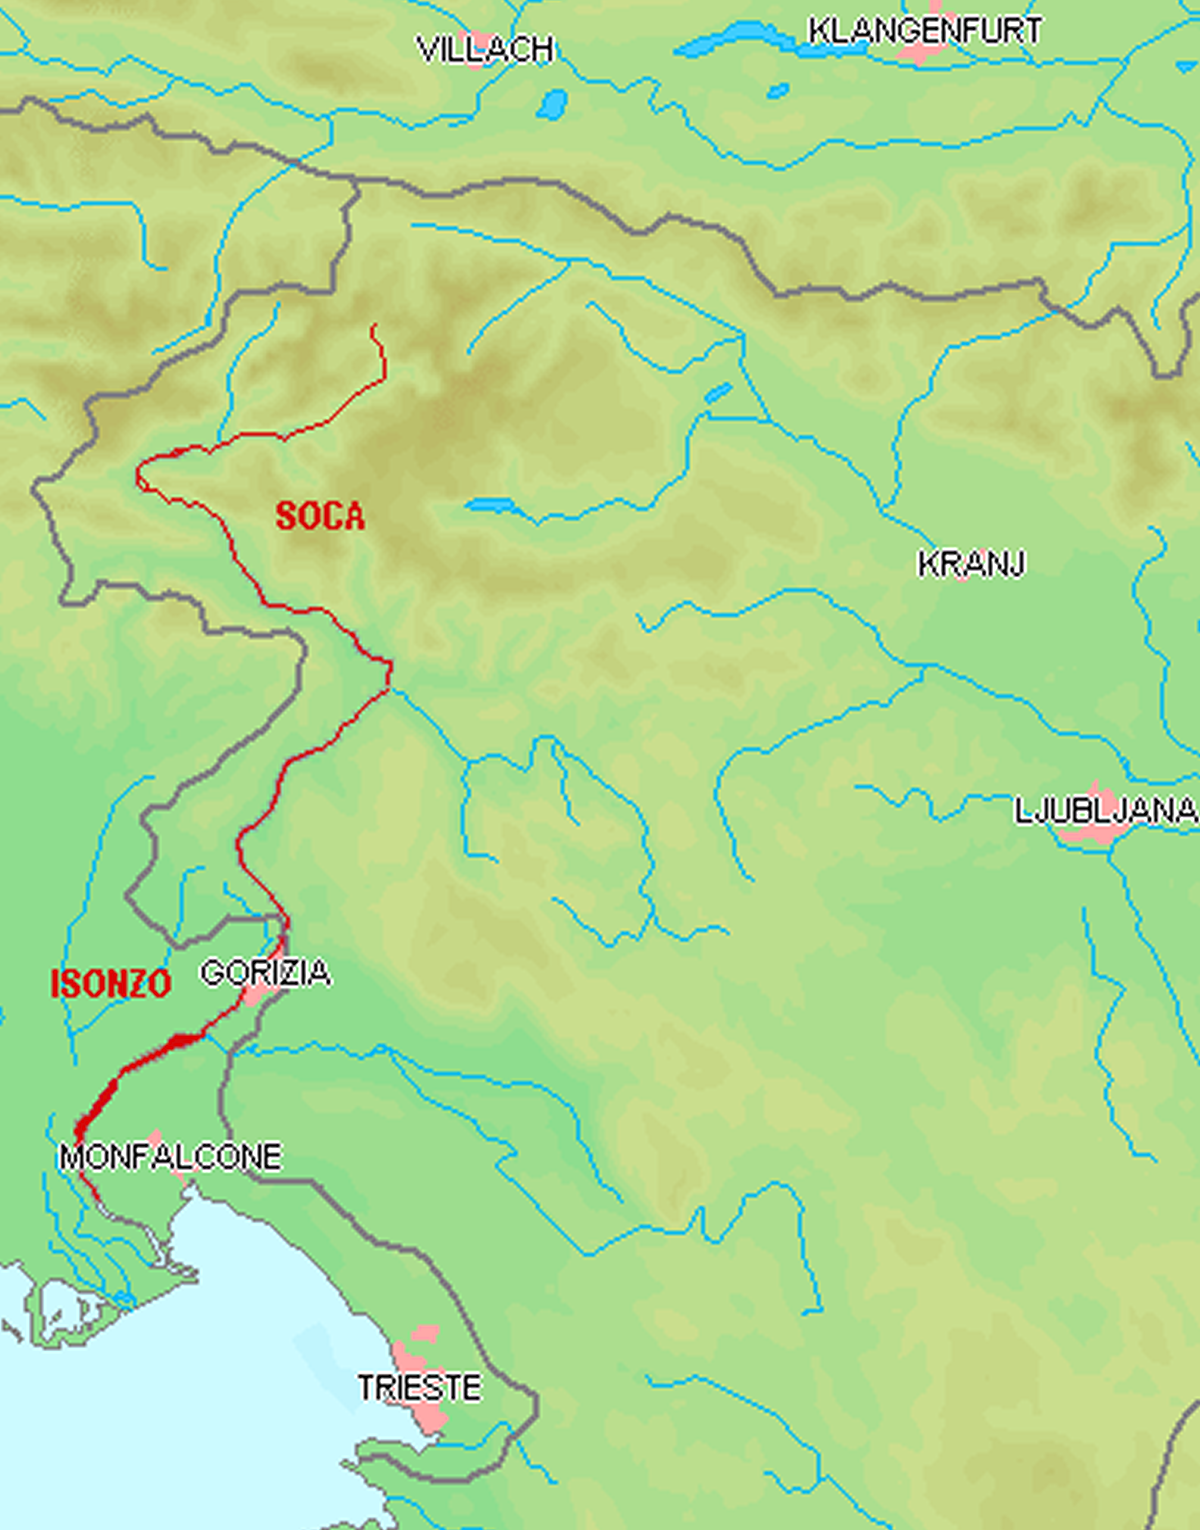 Course of the Soca/Isonzo river